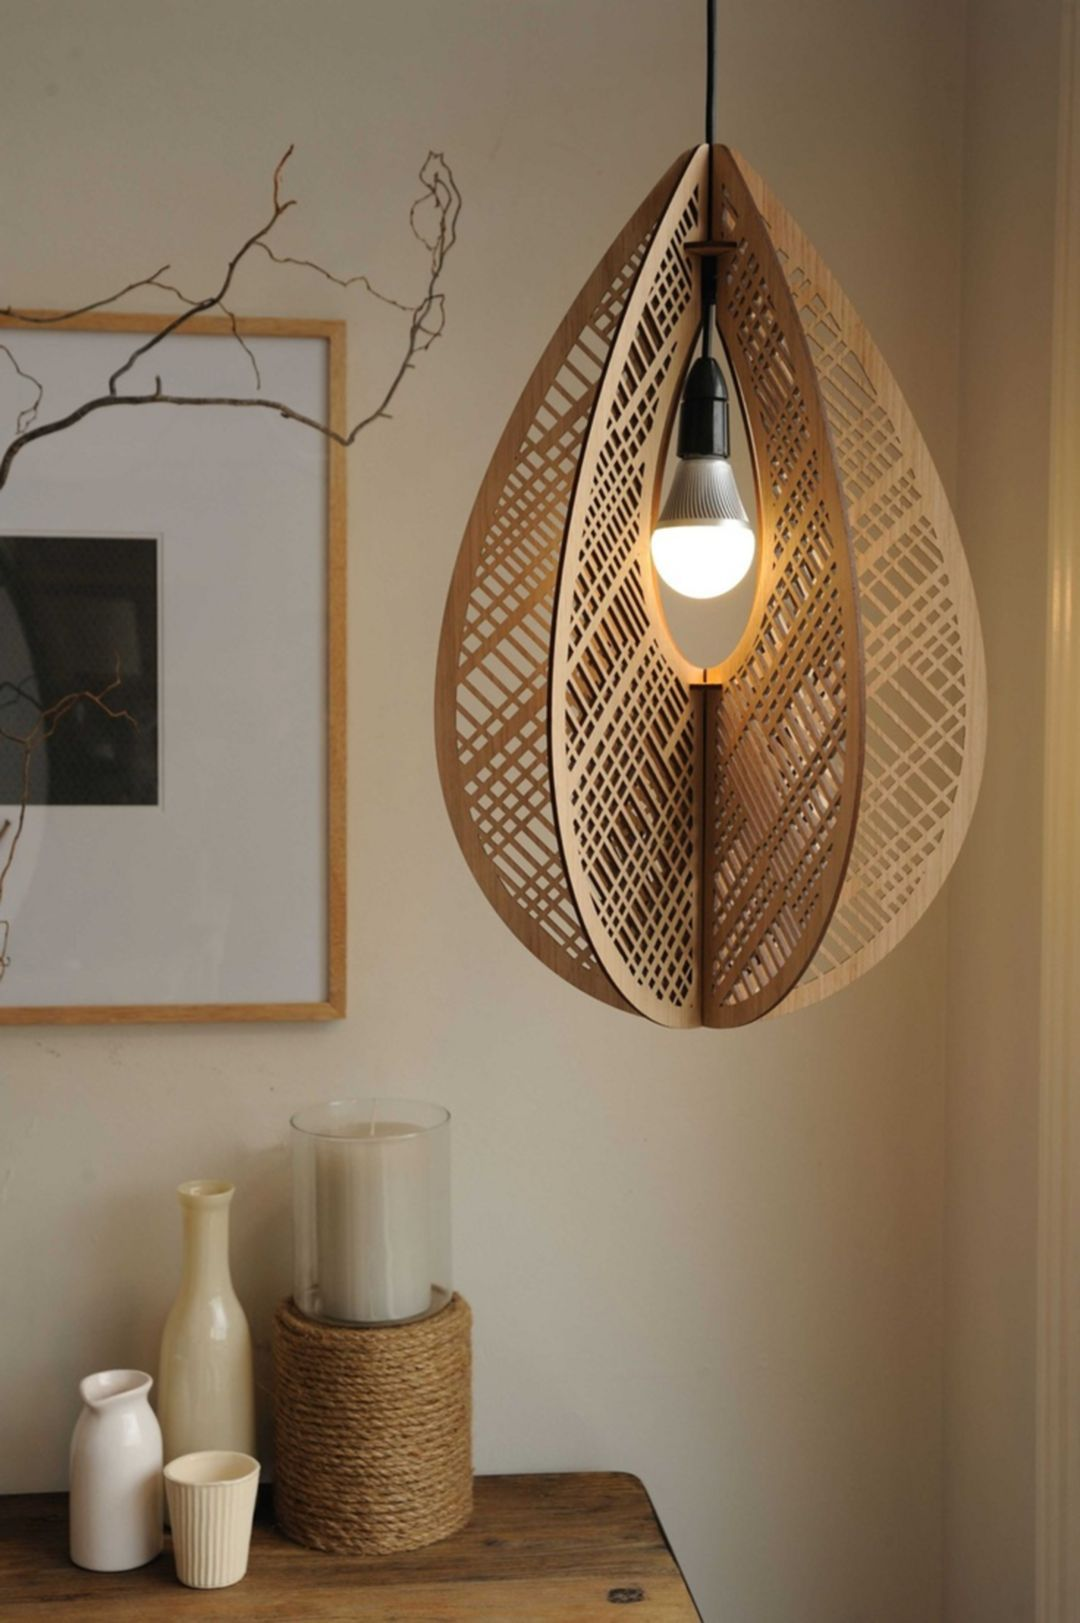 18 Decorative Wood Lamp Designs That Can Beautify Your Home #lightingdesign